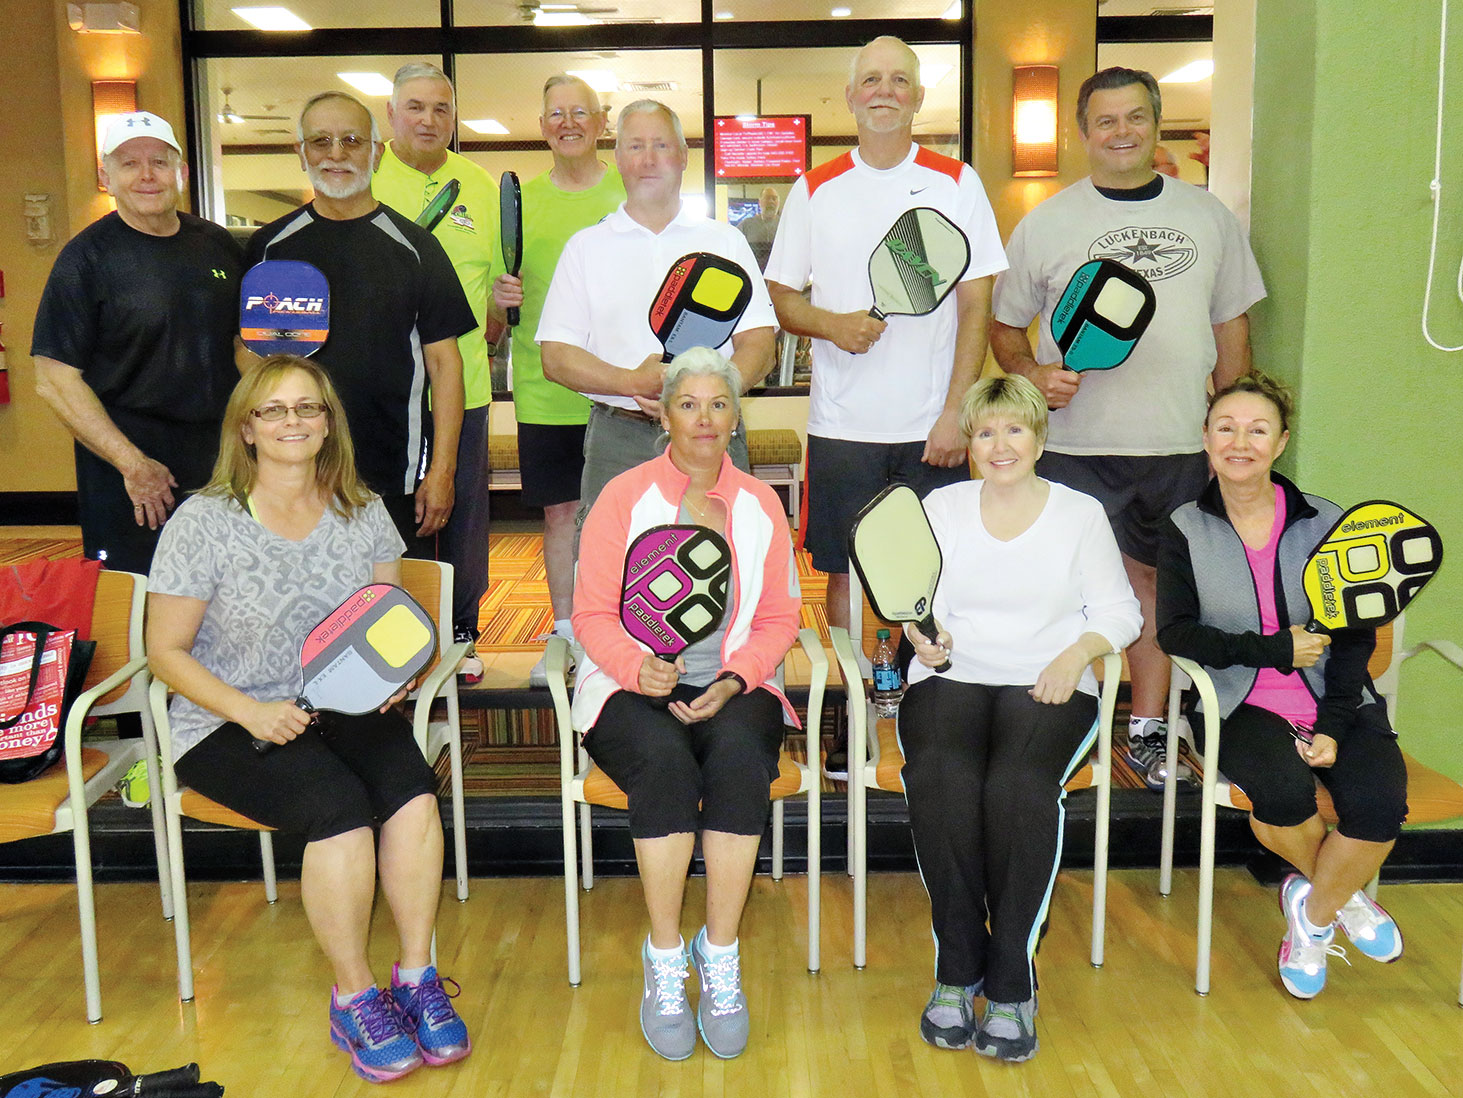 Dr. Tom Burke and graduates of the April Pickleball Academy